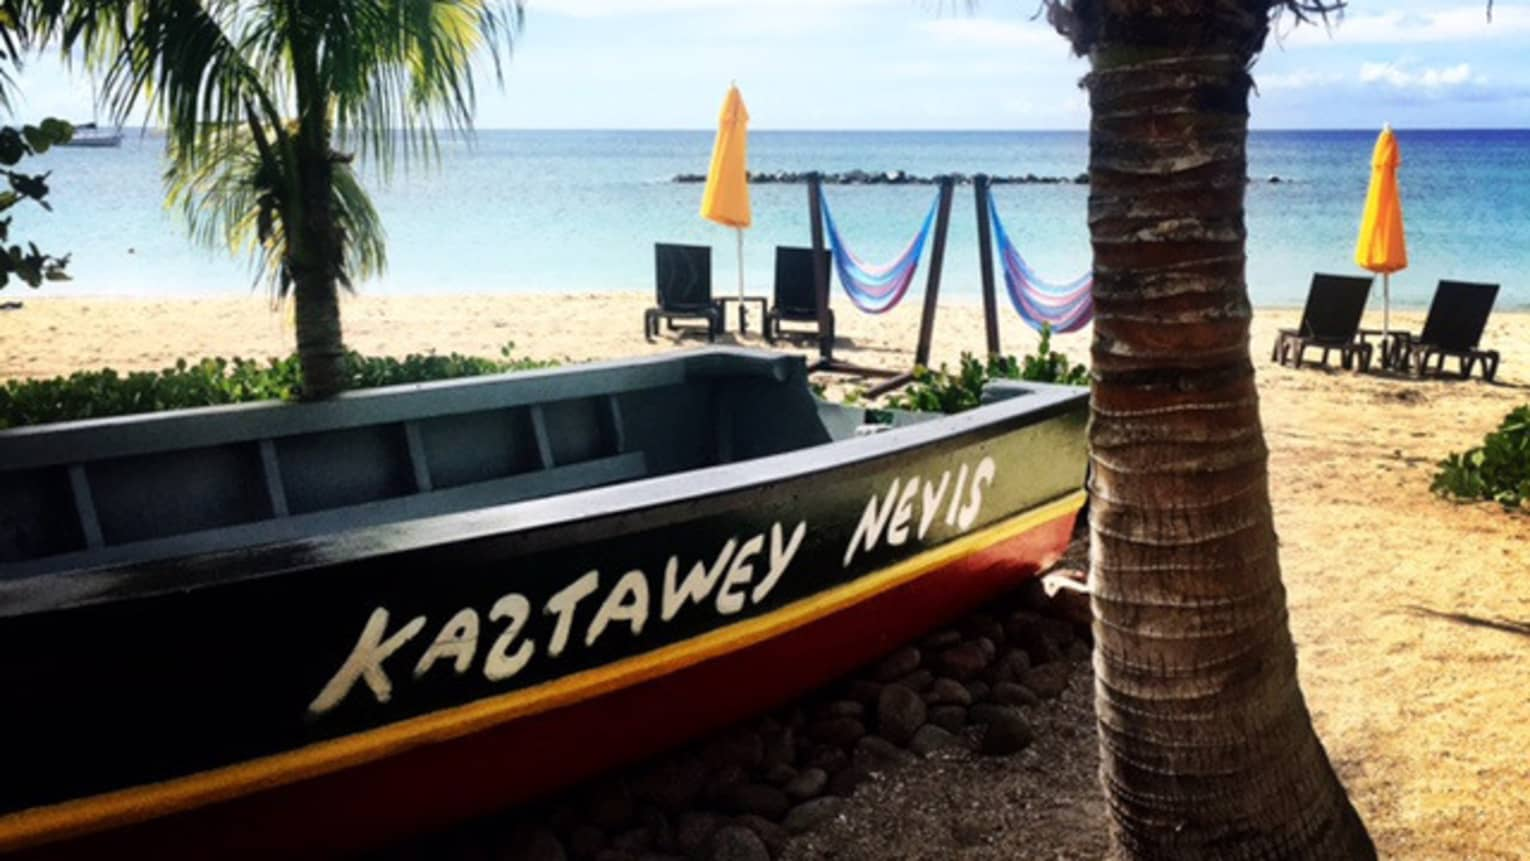 Boat with Kastaway Nevis name on beach beside palm tree near hammocks